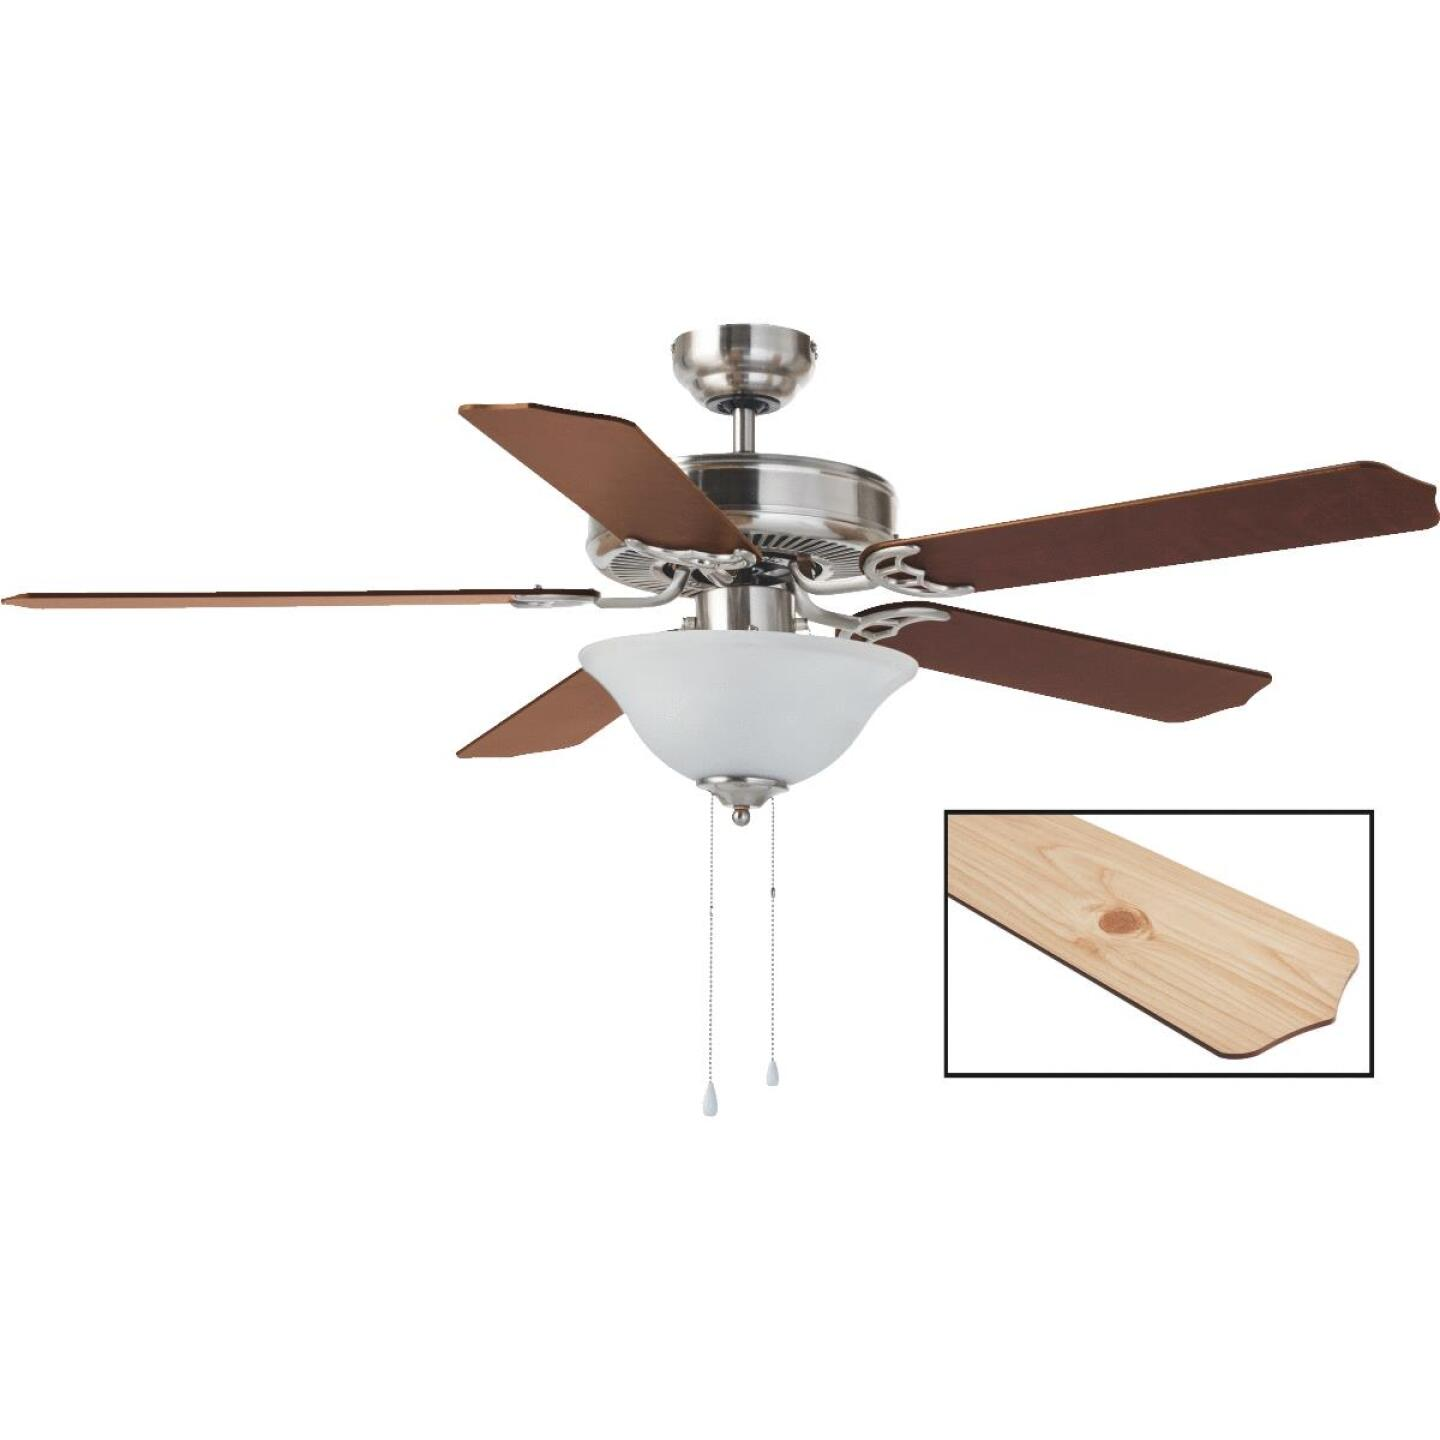 Home Impressions Baylor 52 In. Brushed Nickel Ceiling Fan with Light Kit Image 1